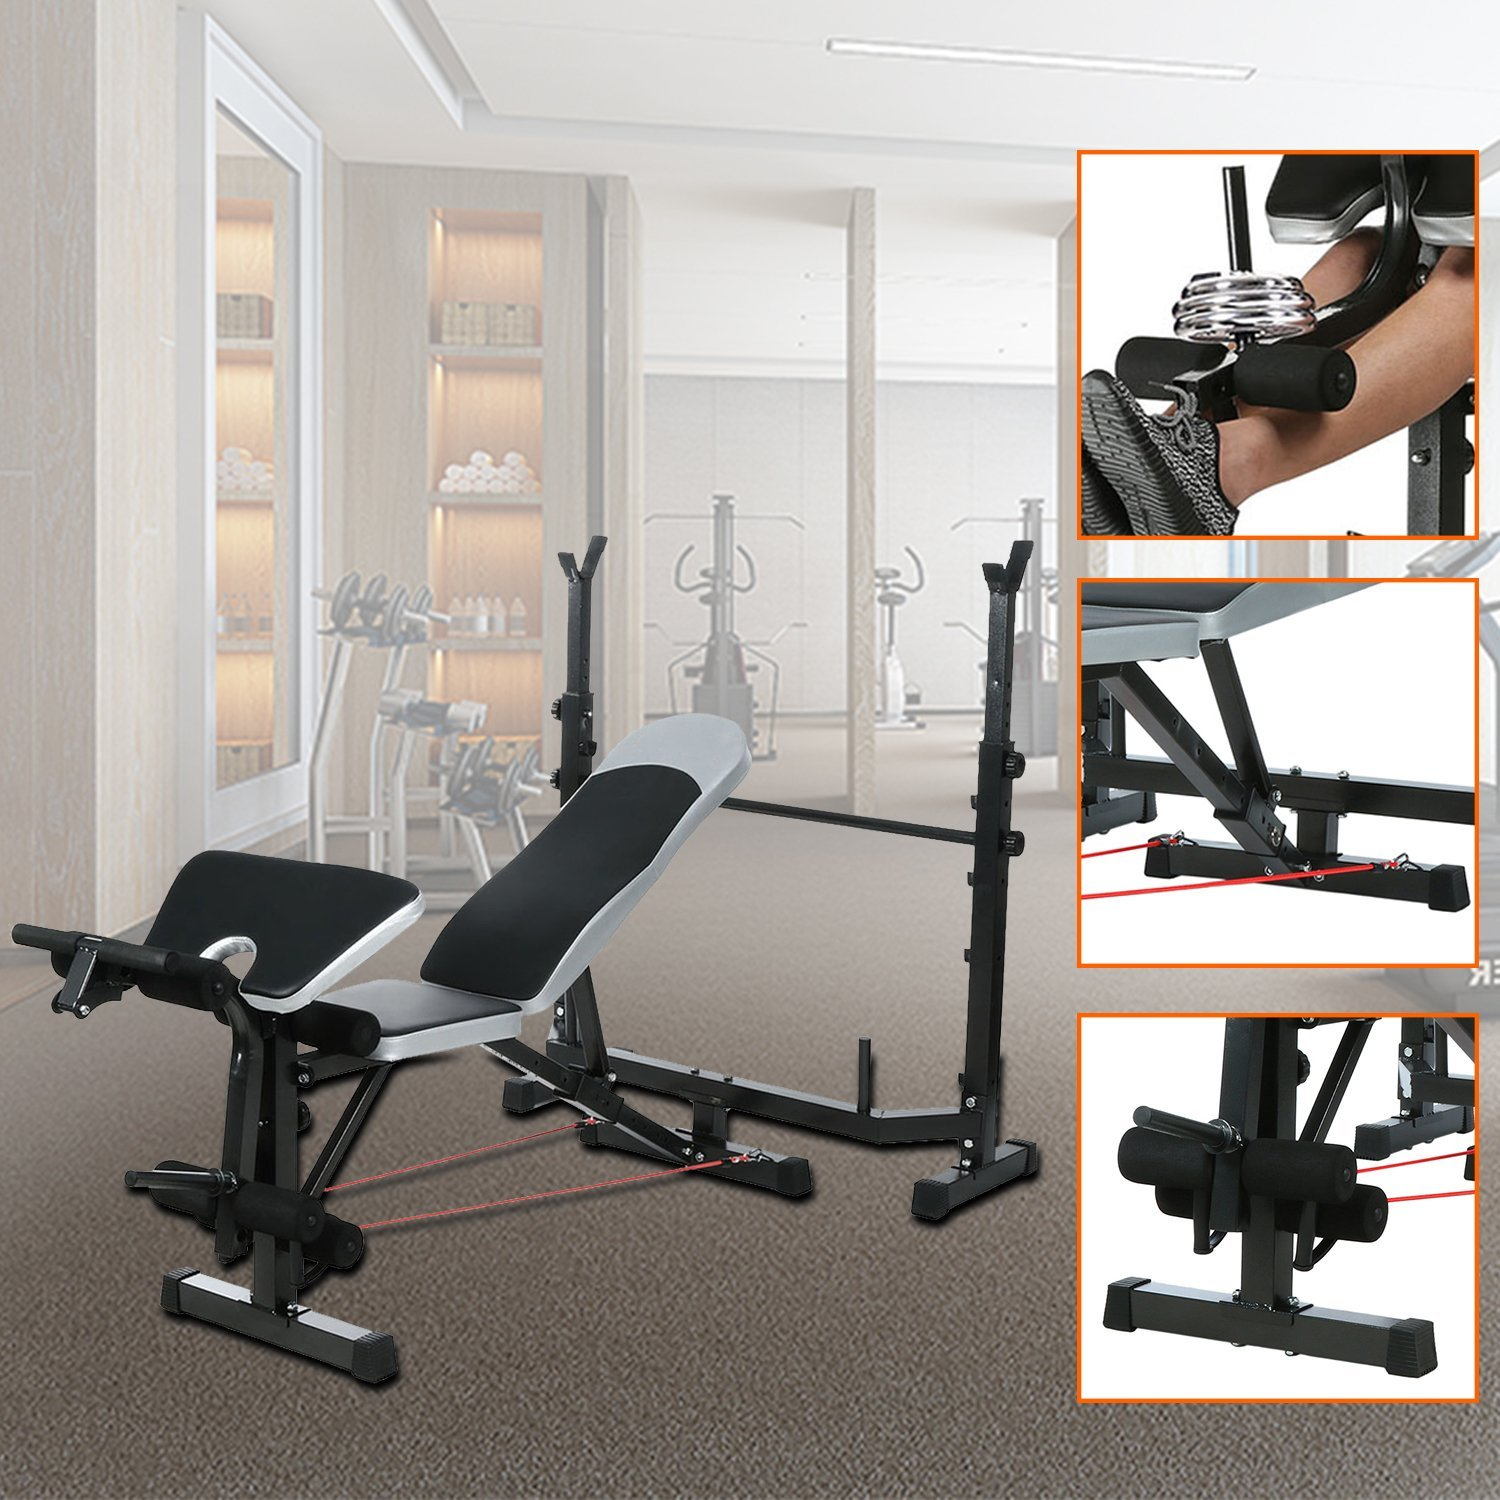 Olympic Weight Bench Amazon with Squat Rack, Preacher Curl and Leg Developer